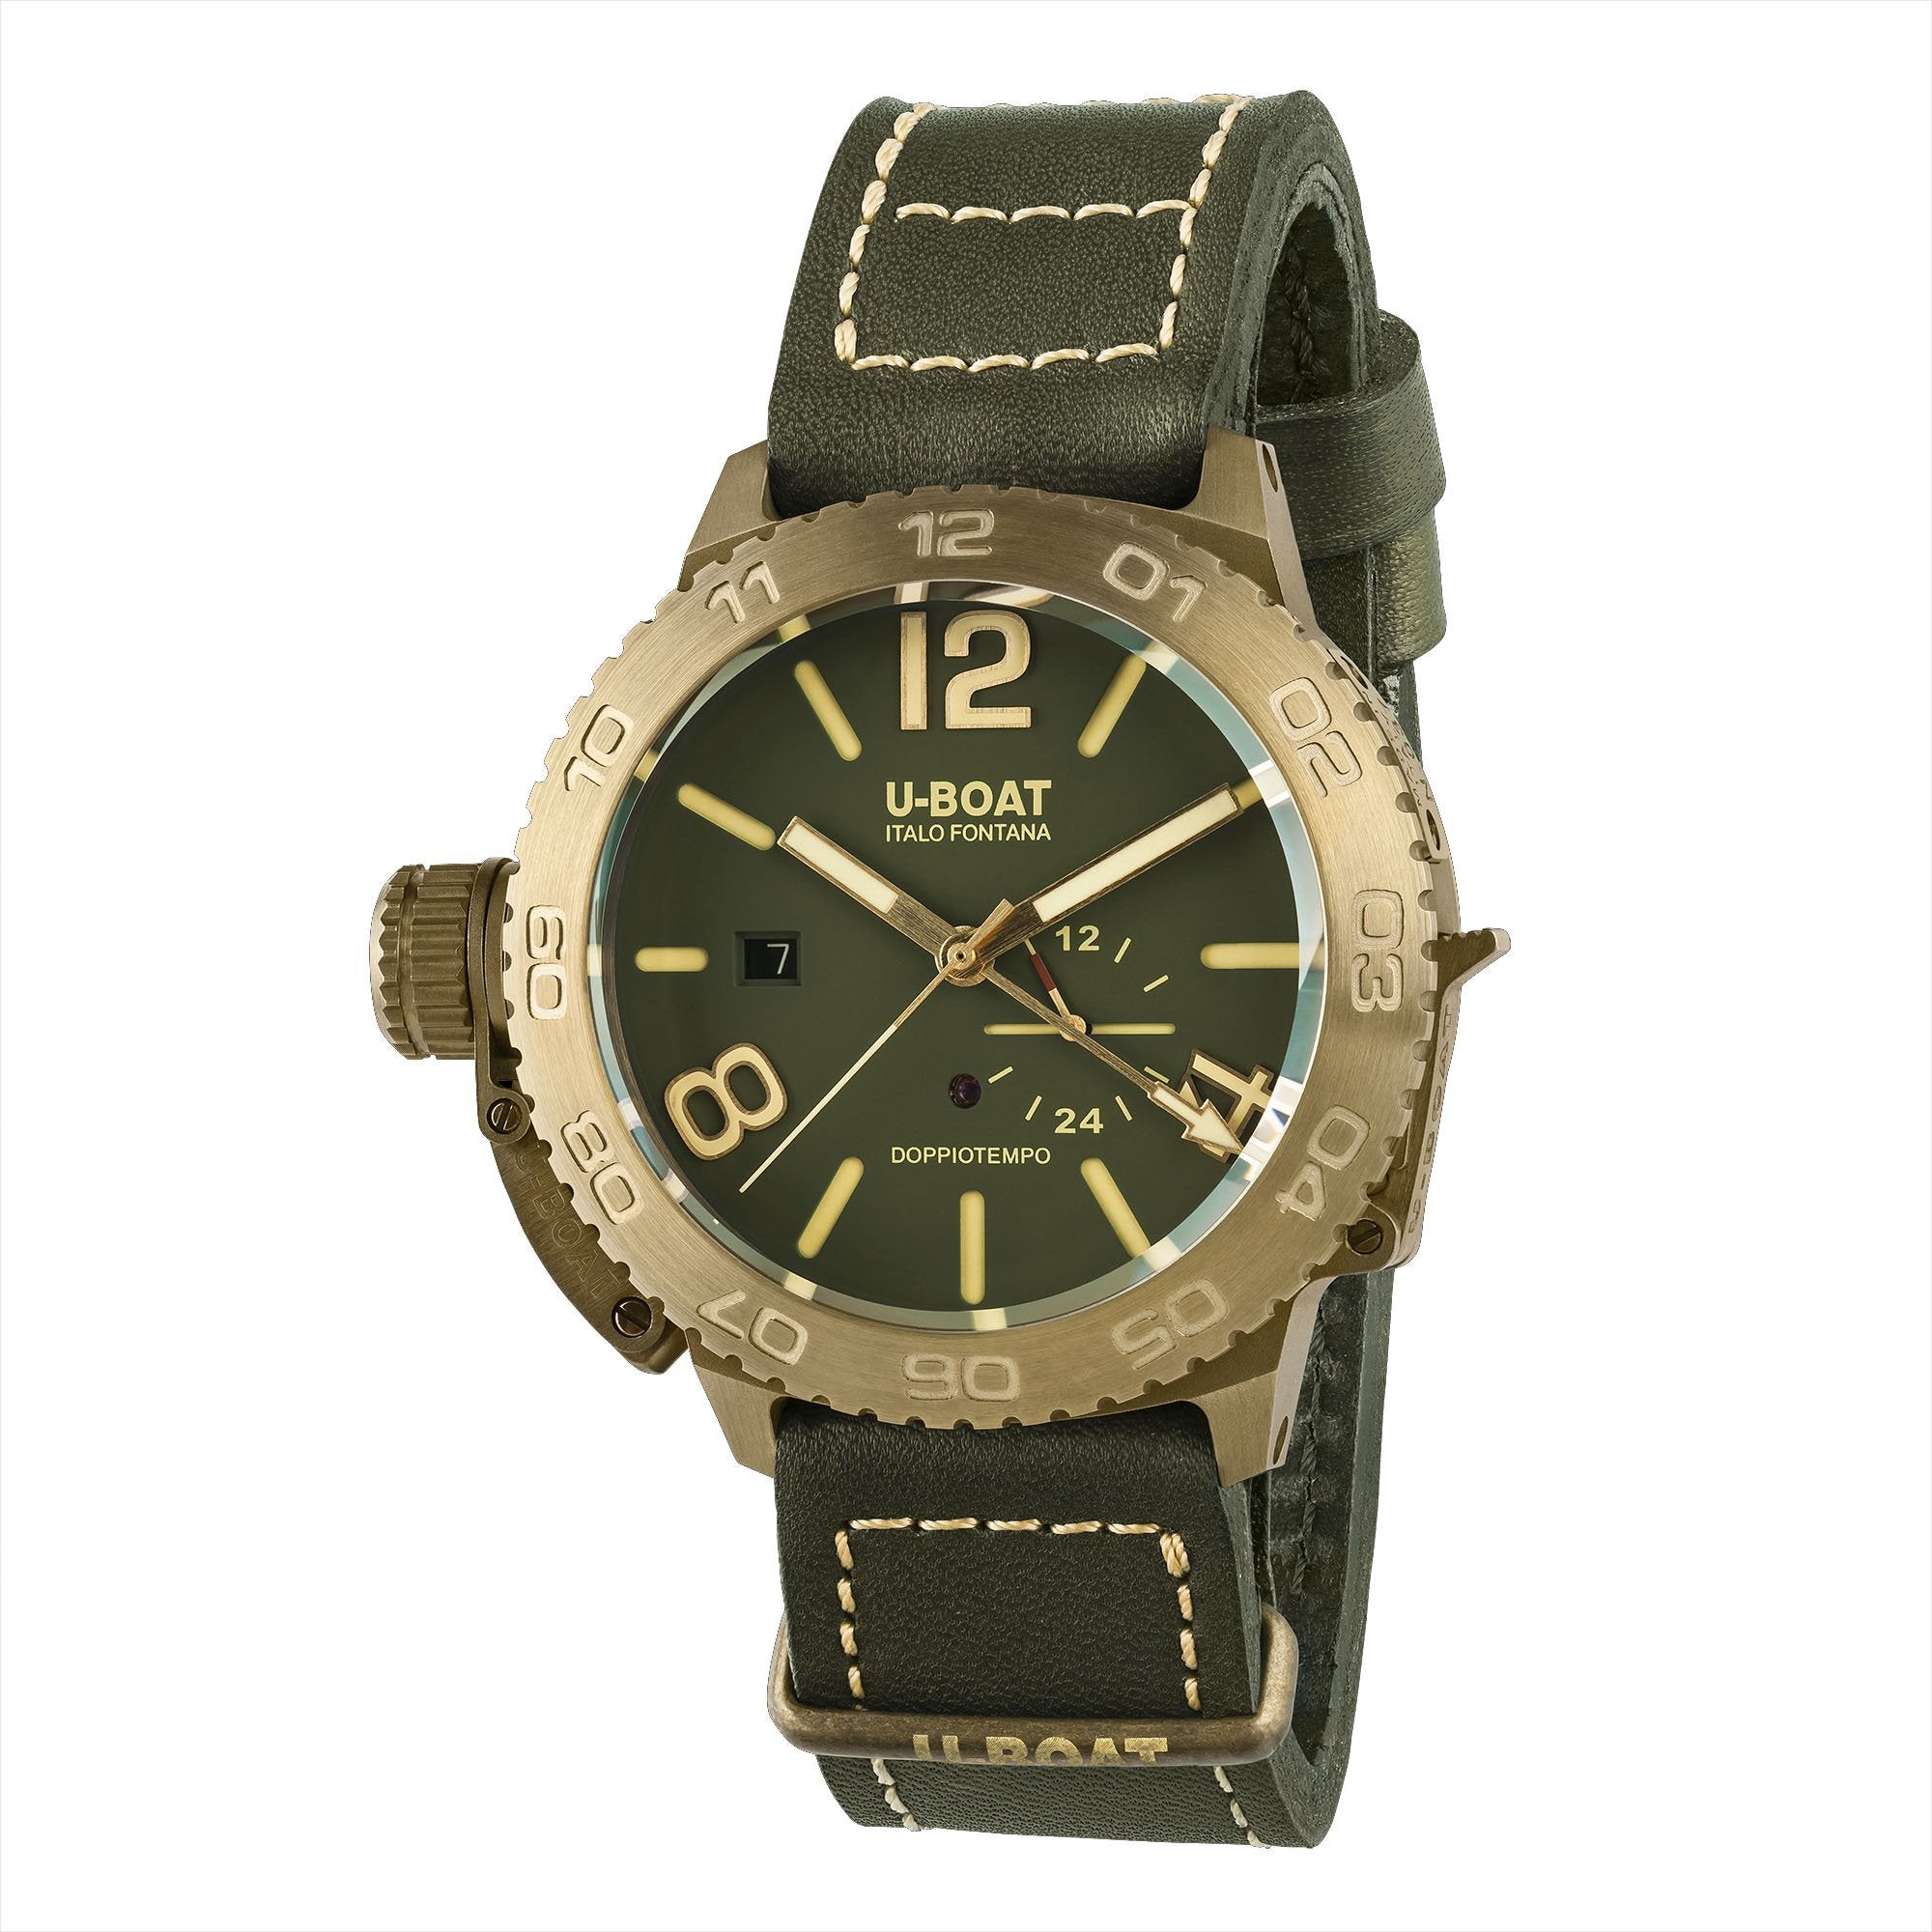 U-Boat Doppiotempo Date Green - Watches & Crystals